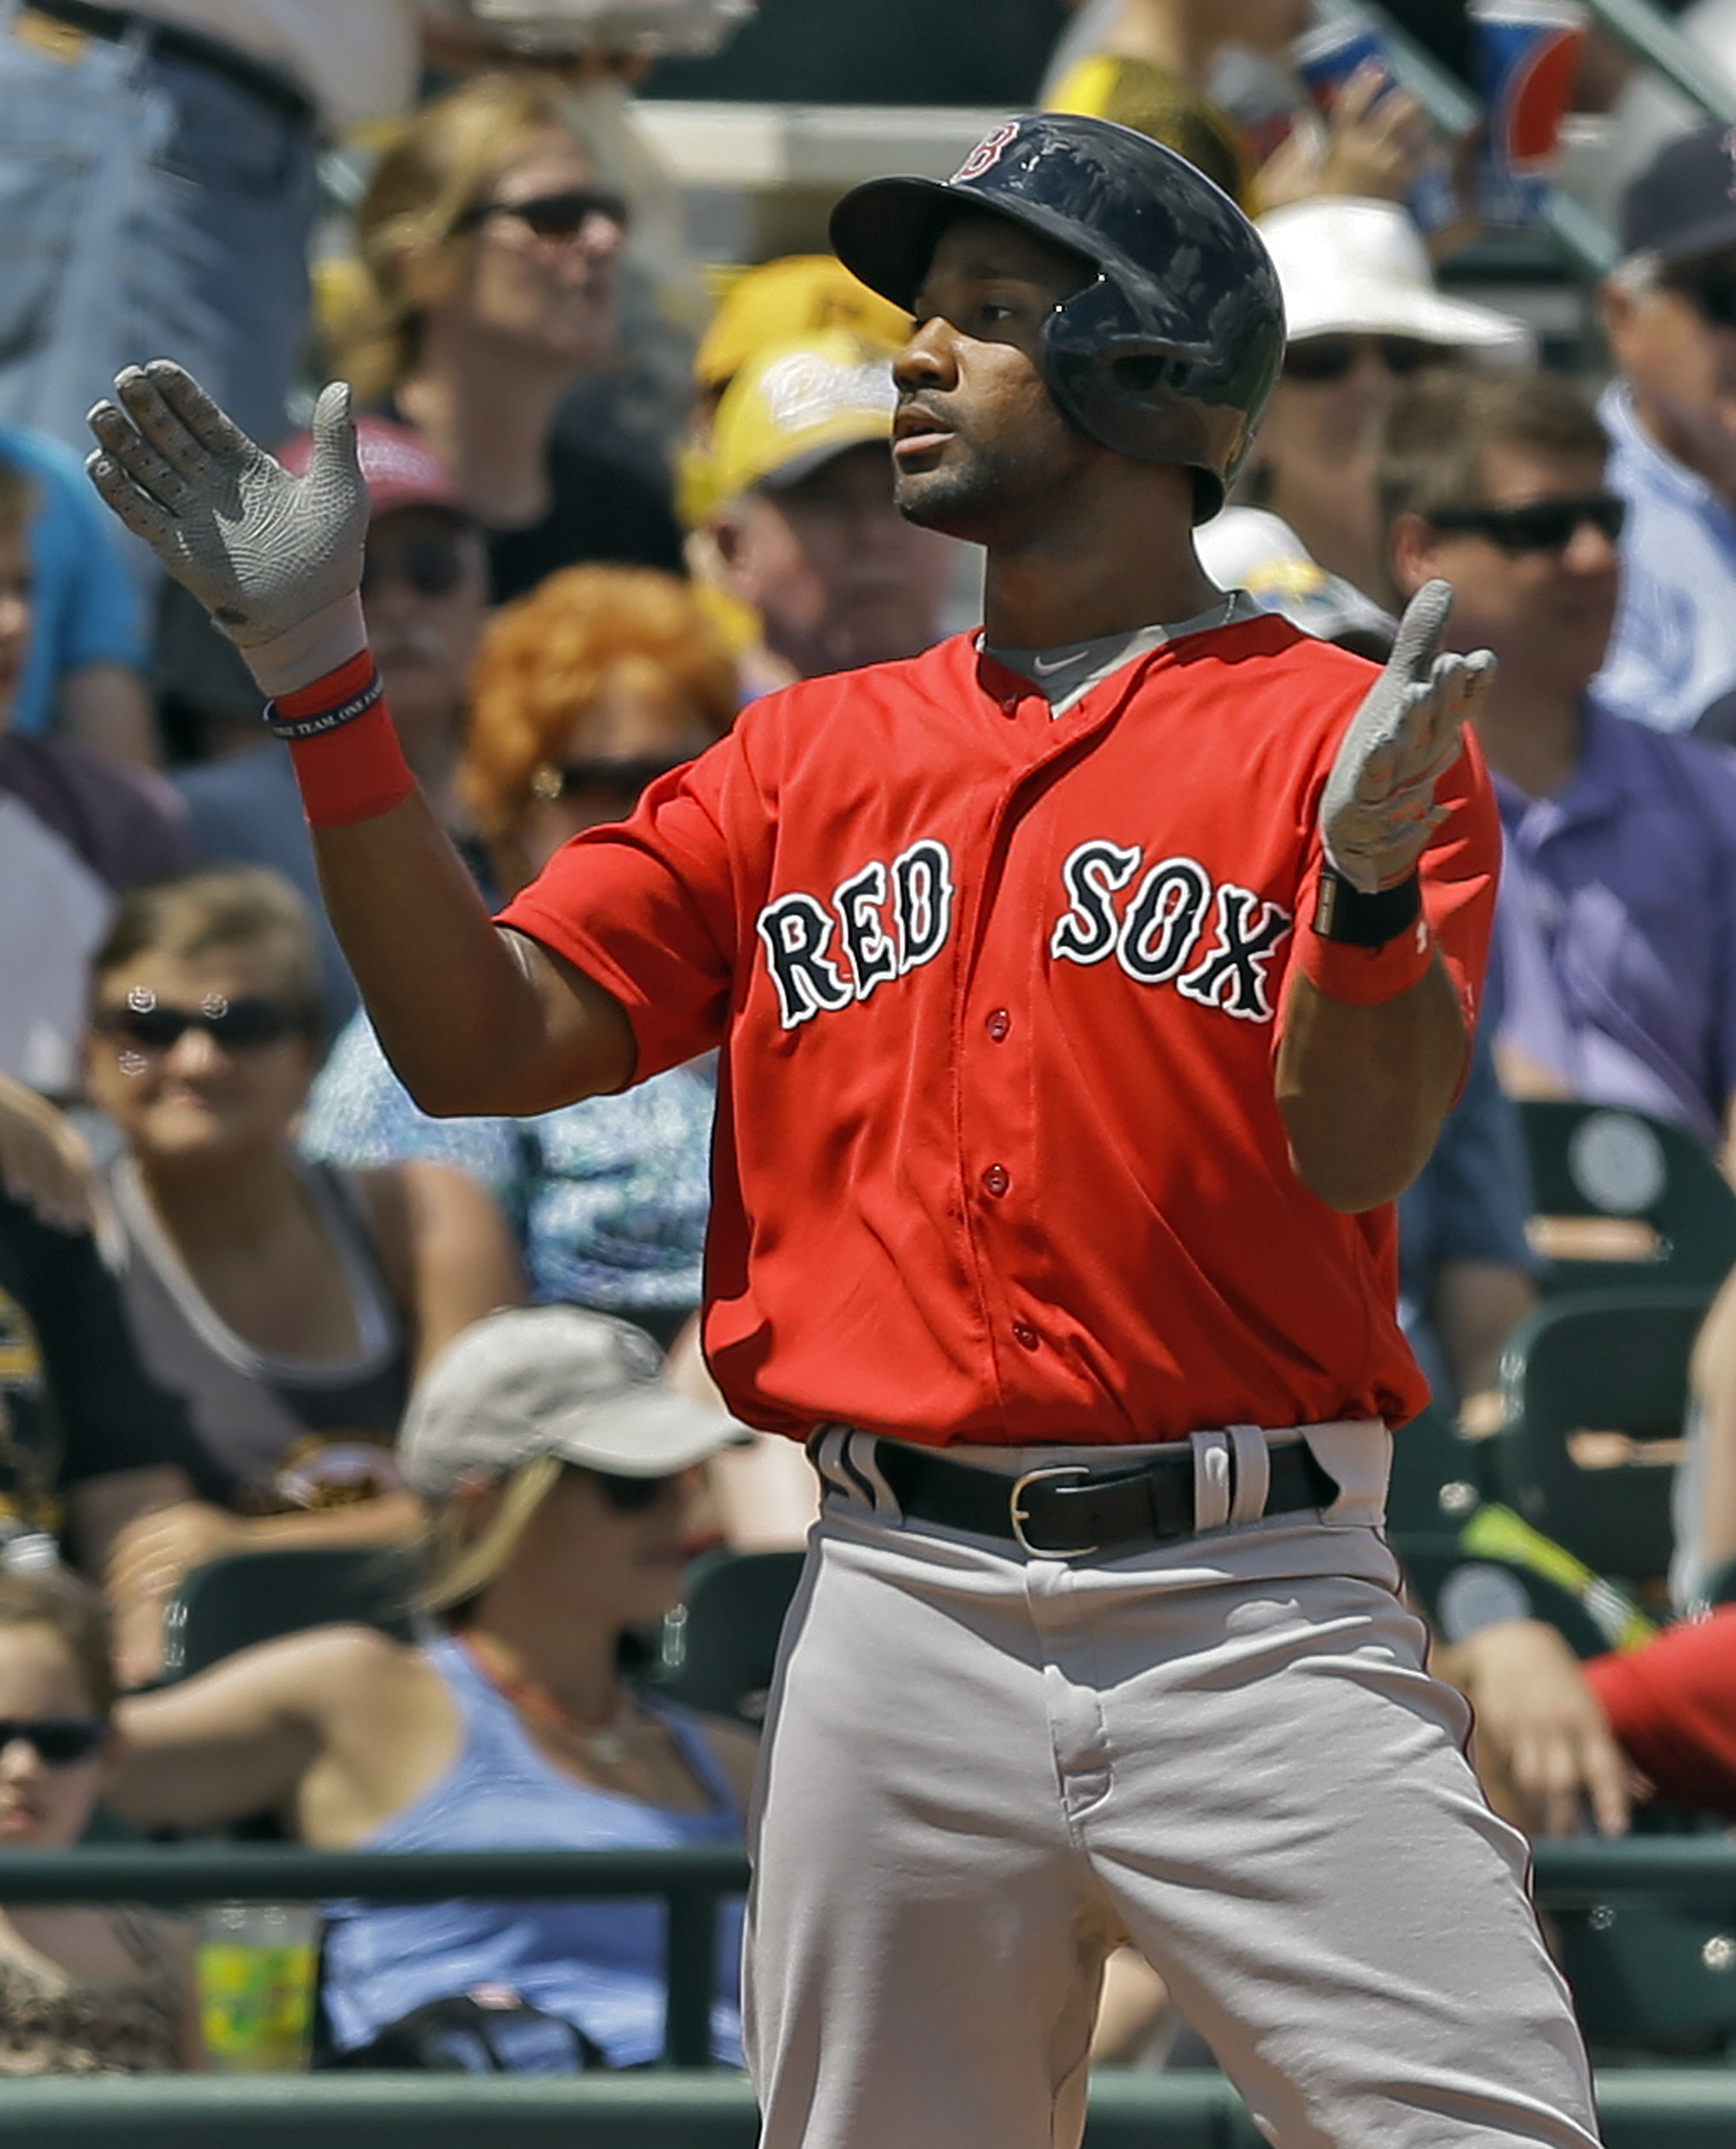 Boston Red Sox's Chris Young reacts after his triple off Pittsburgh Pirates starting pitcher Cory Luebke during the fifth inning of a spring training baseball game Wednesday, March 30, 2016, in Bradenton, Fla. (AP Photo/Chris O'Meara)